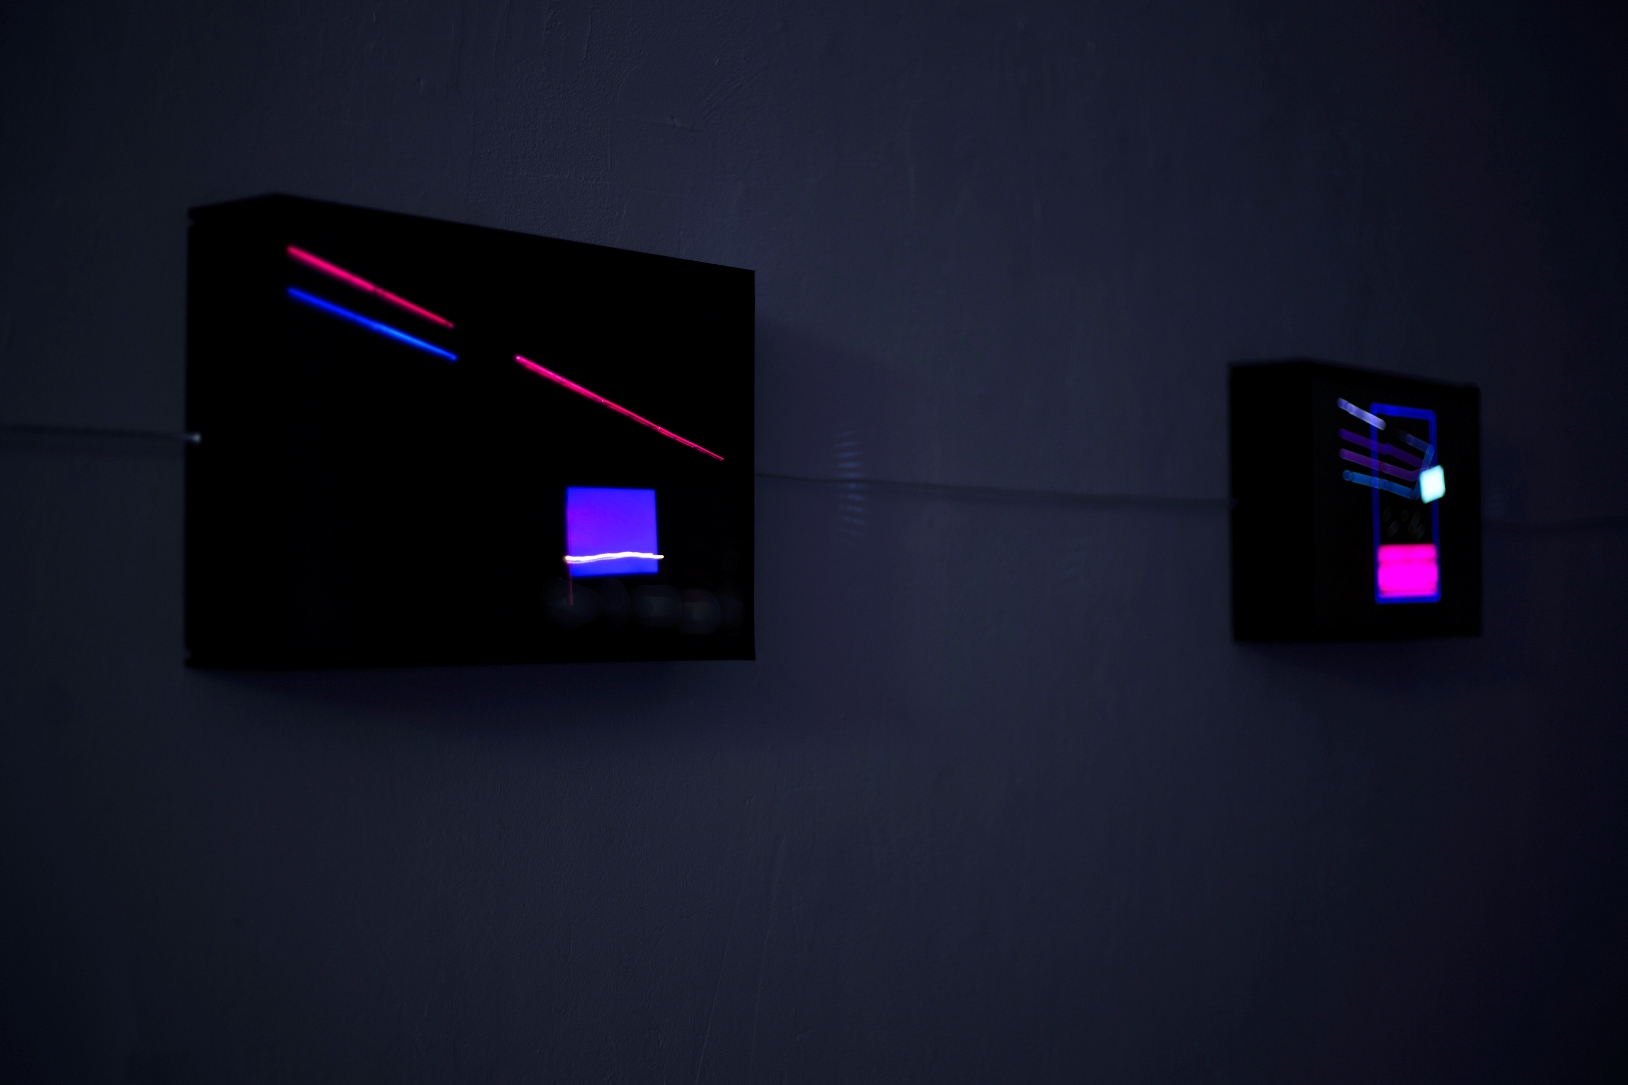 Neon Art by the Talented Serbian Artist Vukasin Delevic